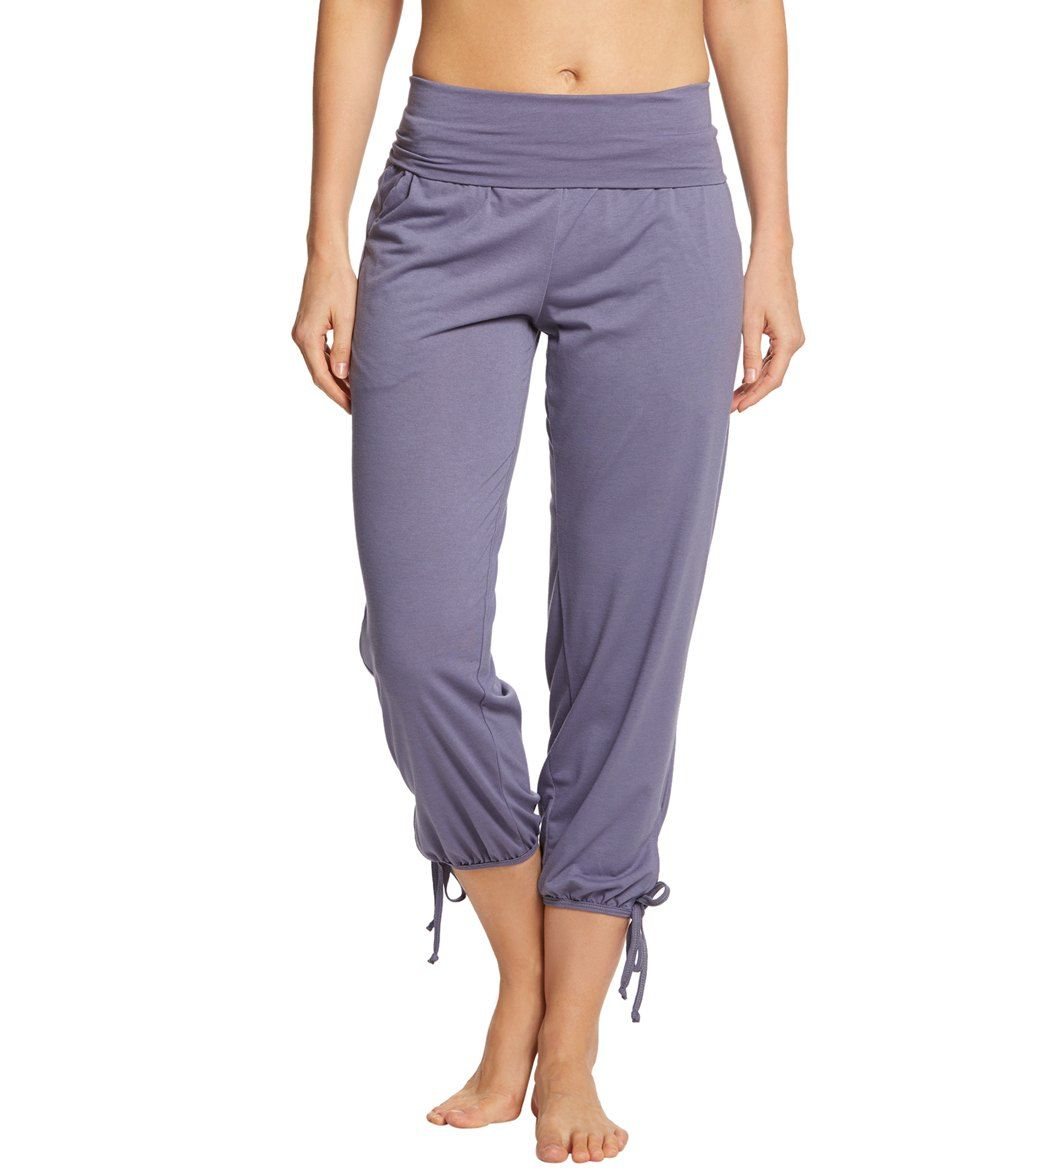 8b2ec409acbc4 Onzie Gypsy Joggers at YogaOutlet.com - Free Shipping   Yoga pants ...